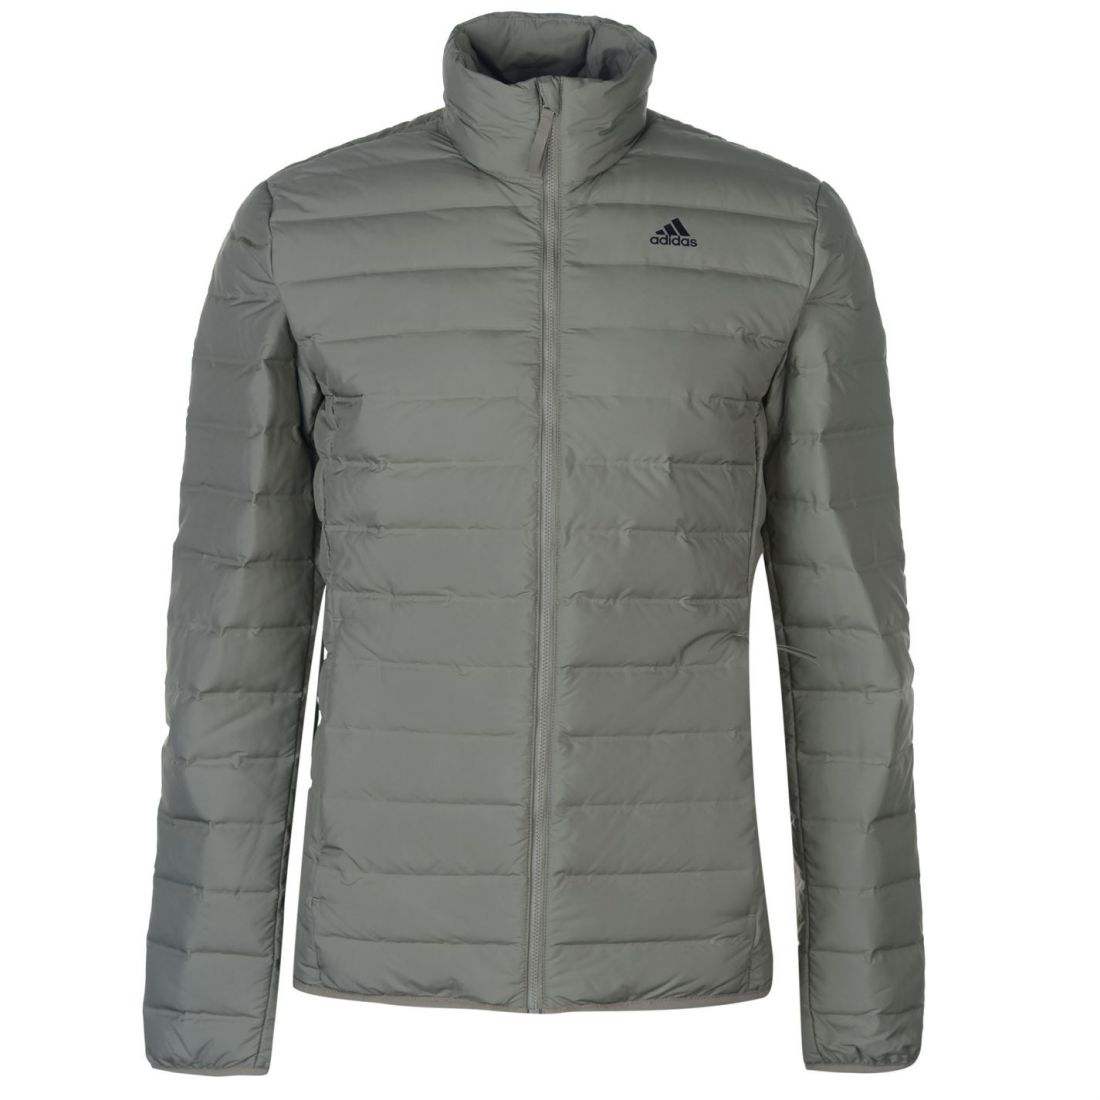 low priced a4b71 04149 adidas Mens Varilite Jacket Puffer Coat Top Long Sleeve Chin Guard Zip Full